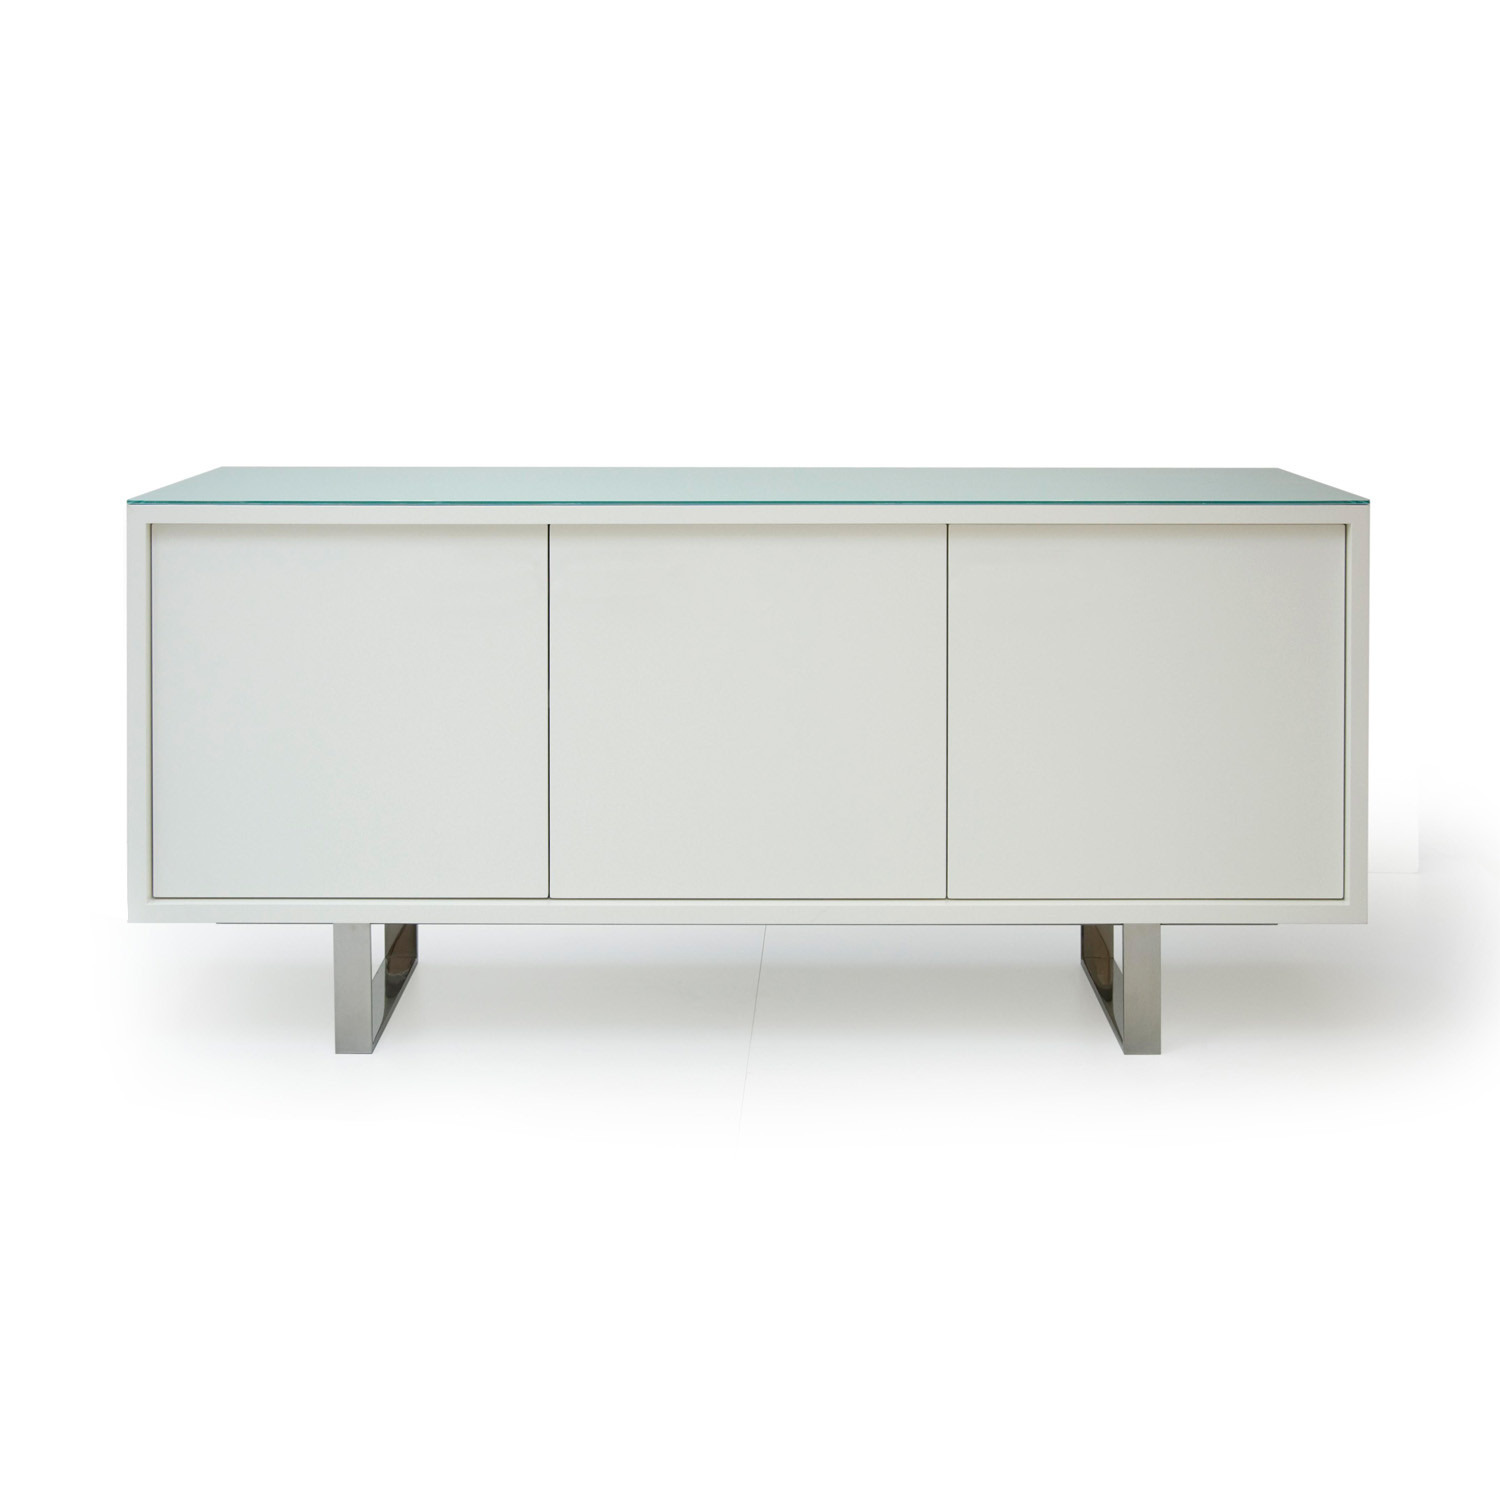 Series 2 Credenza Unit - Back Detail